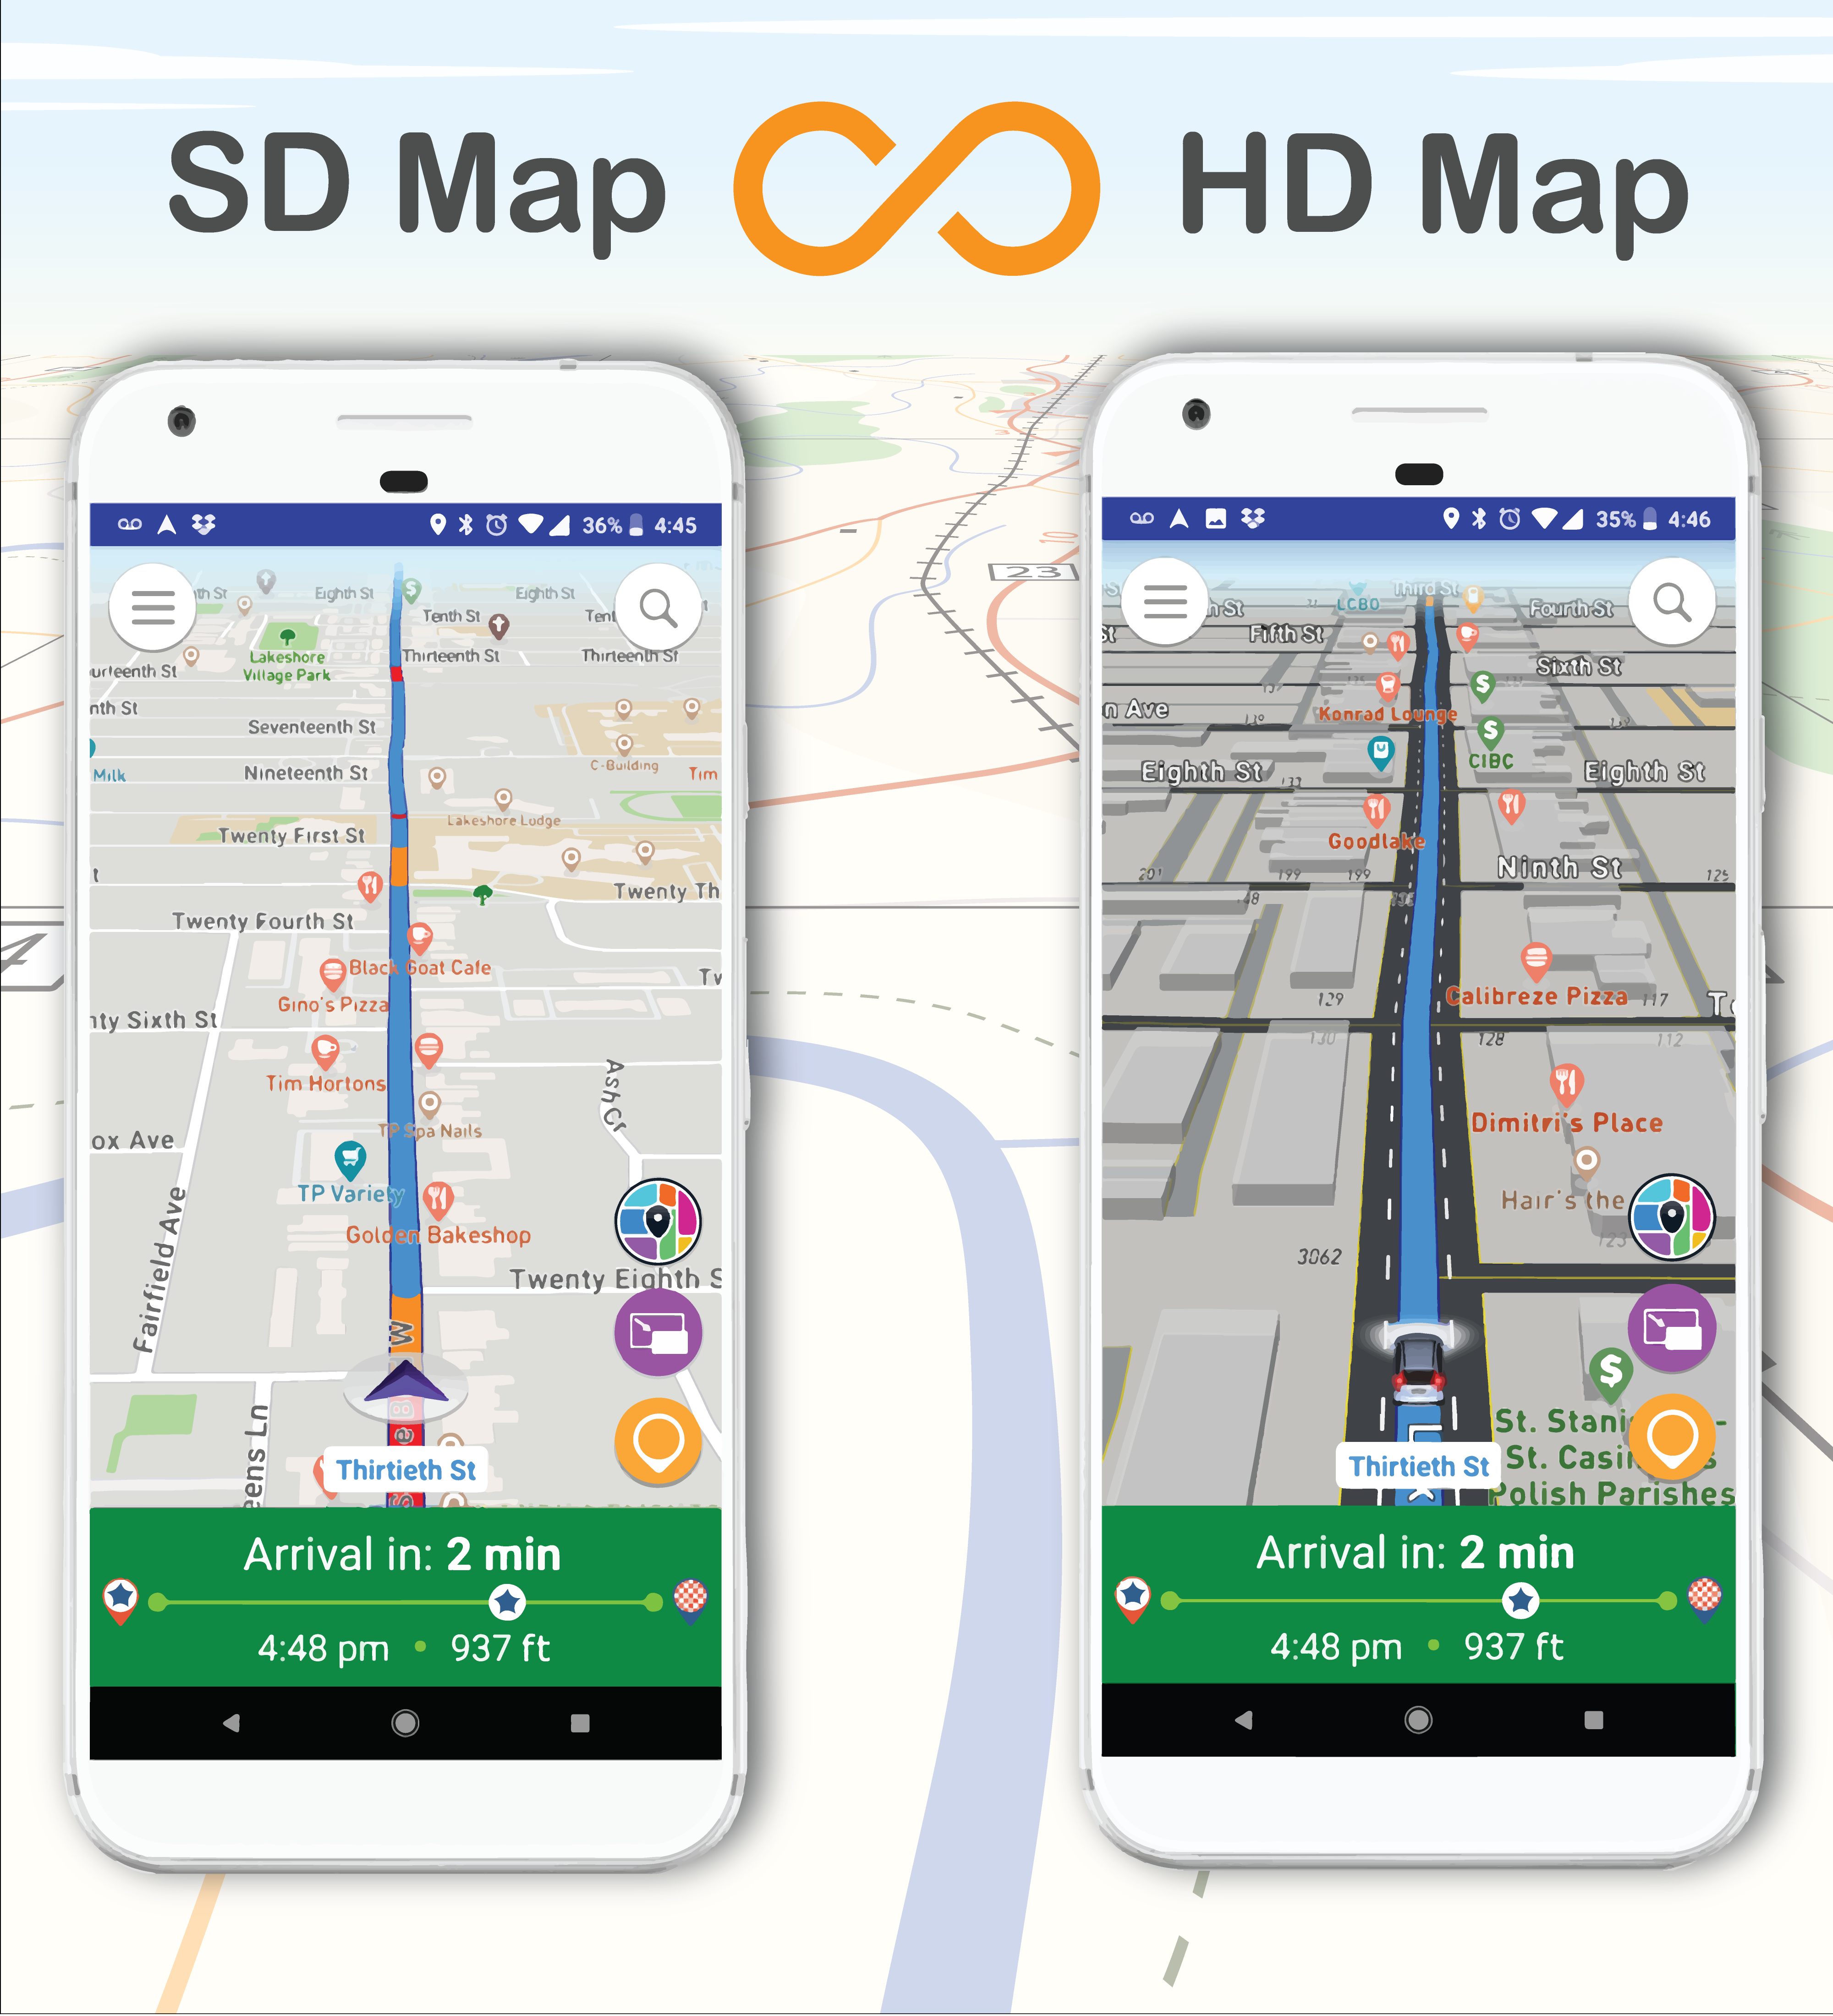 HD Map & SD Map